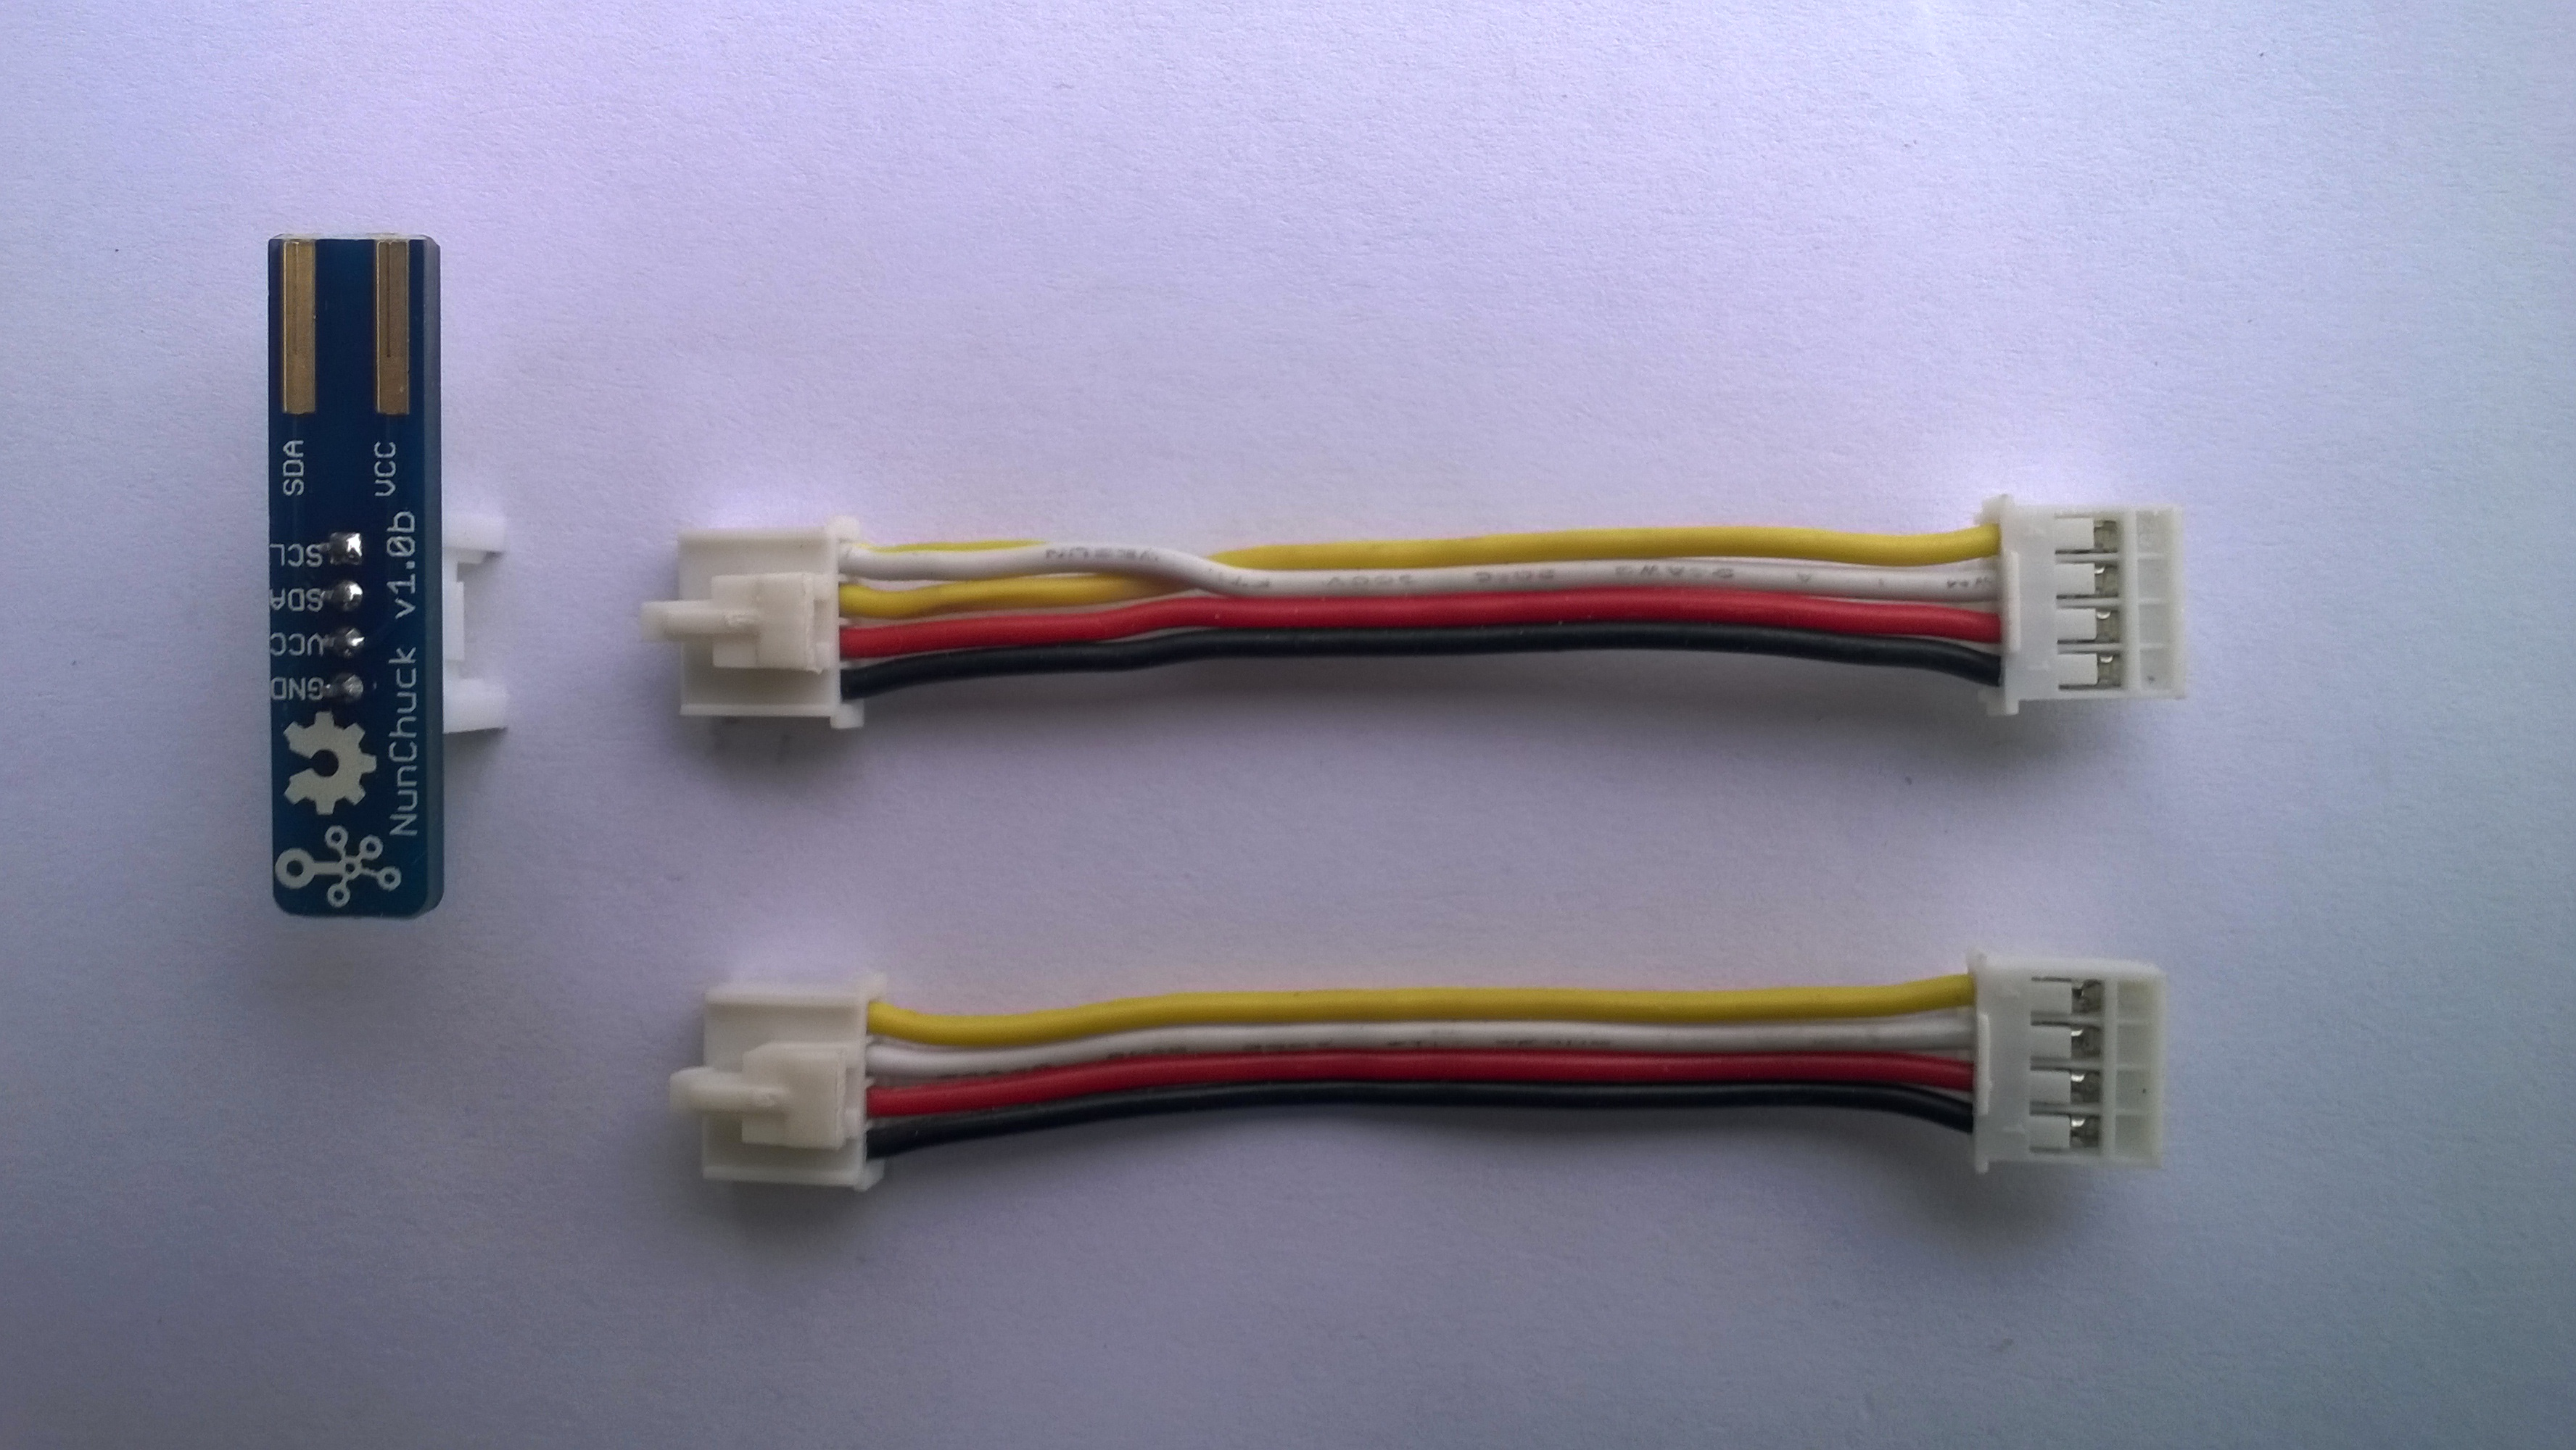 Seeedstudio 5CM cable with SDA & SCL Pins reversed.